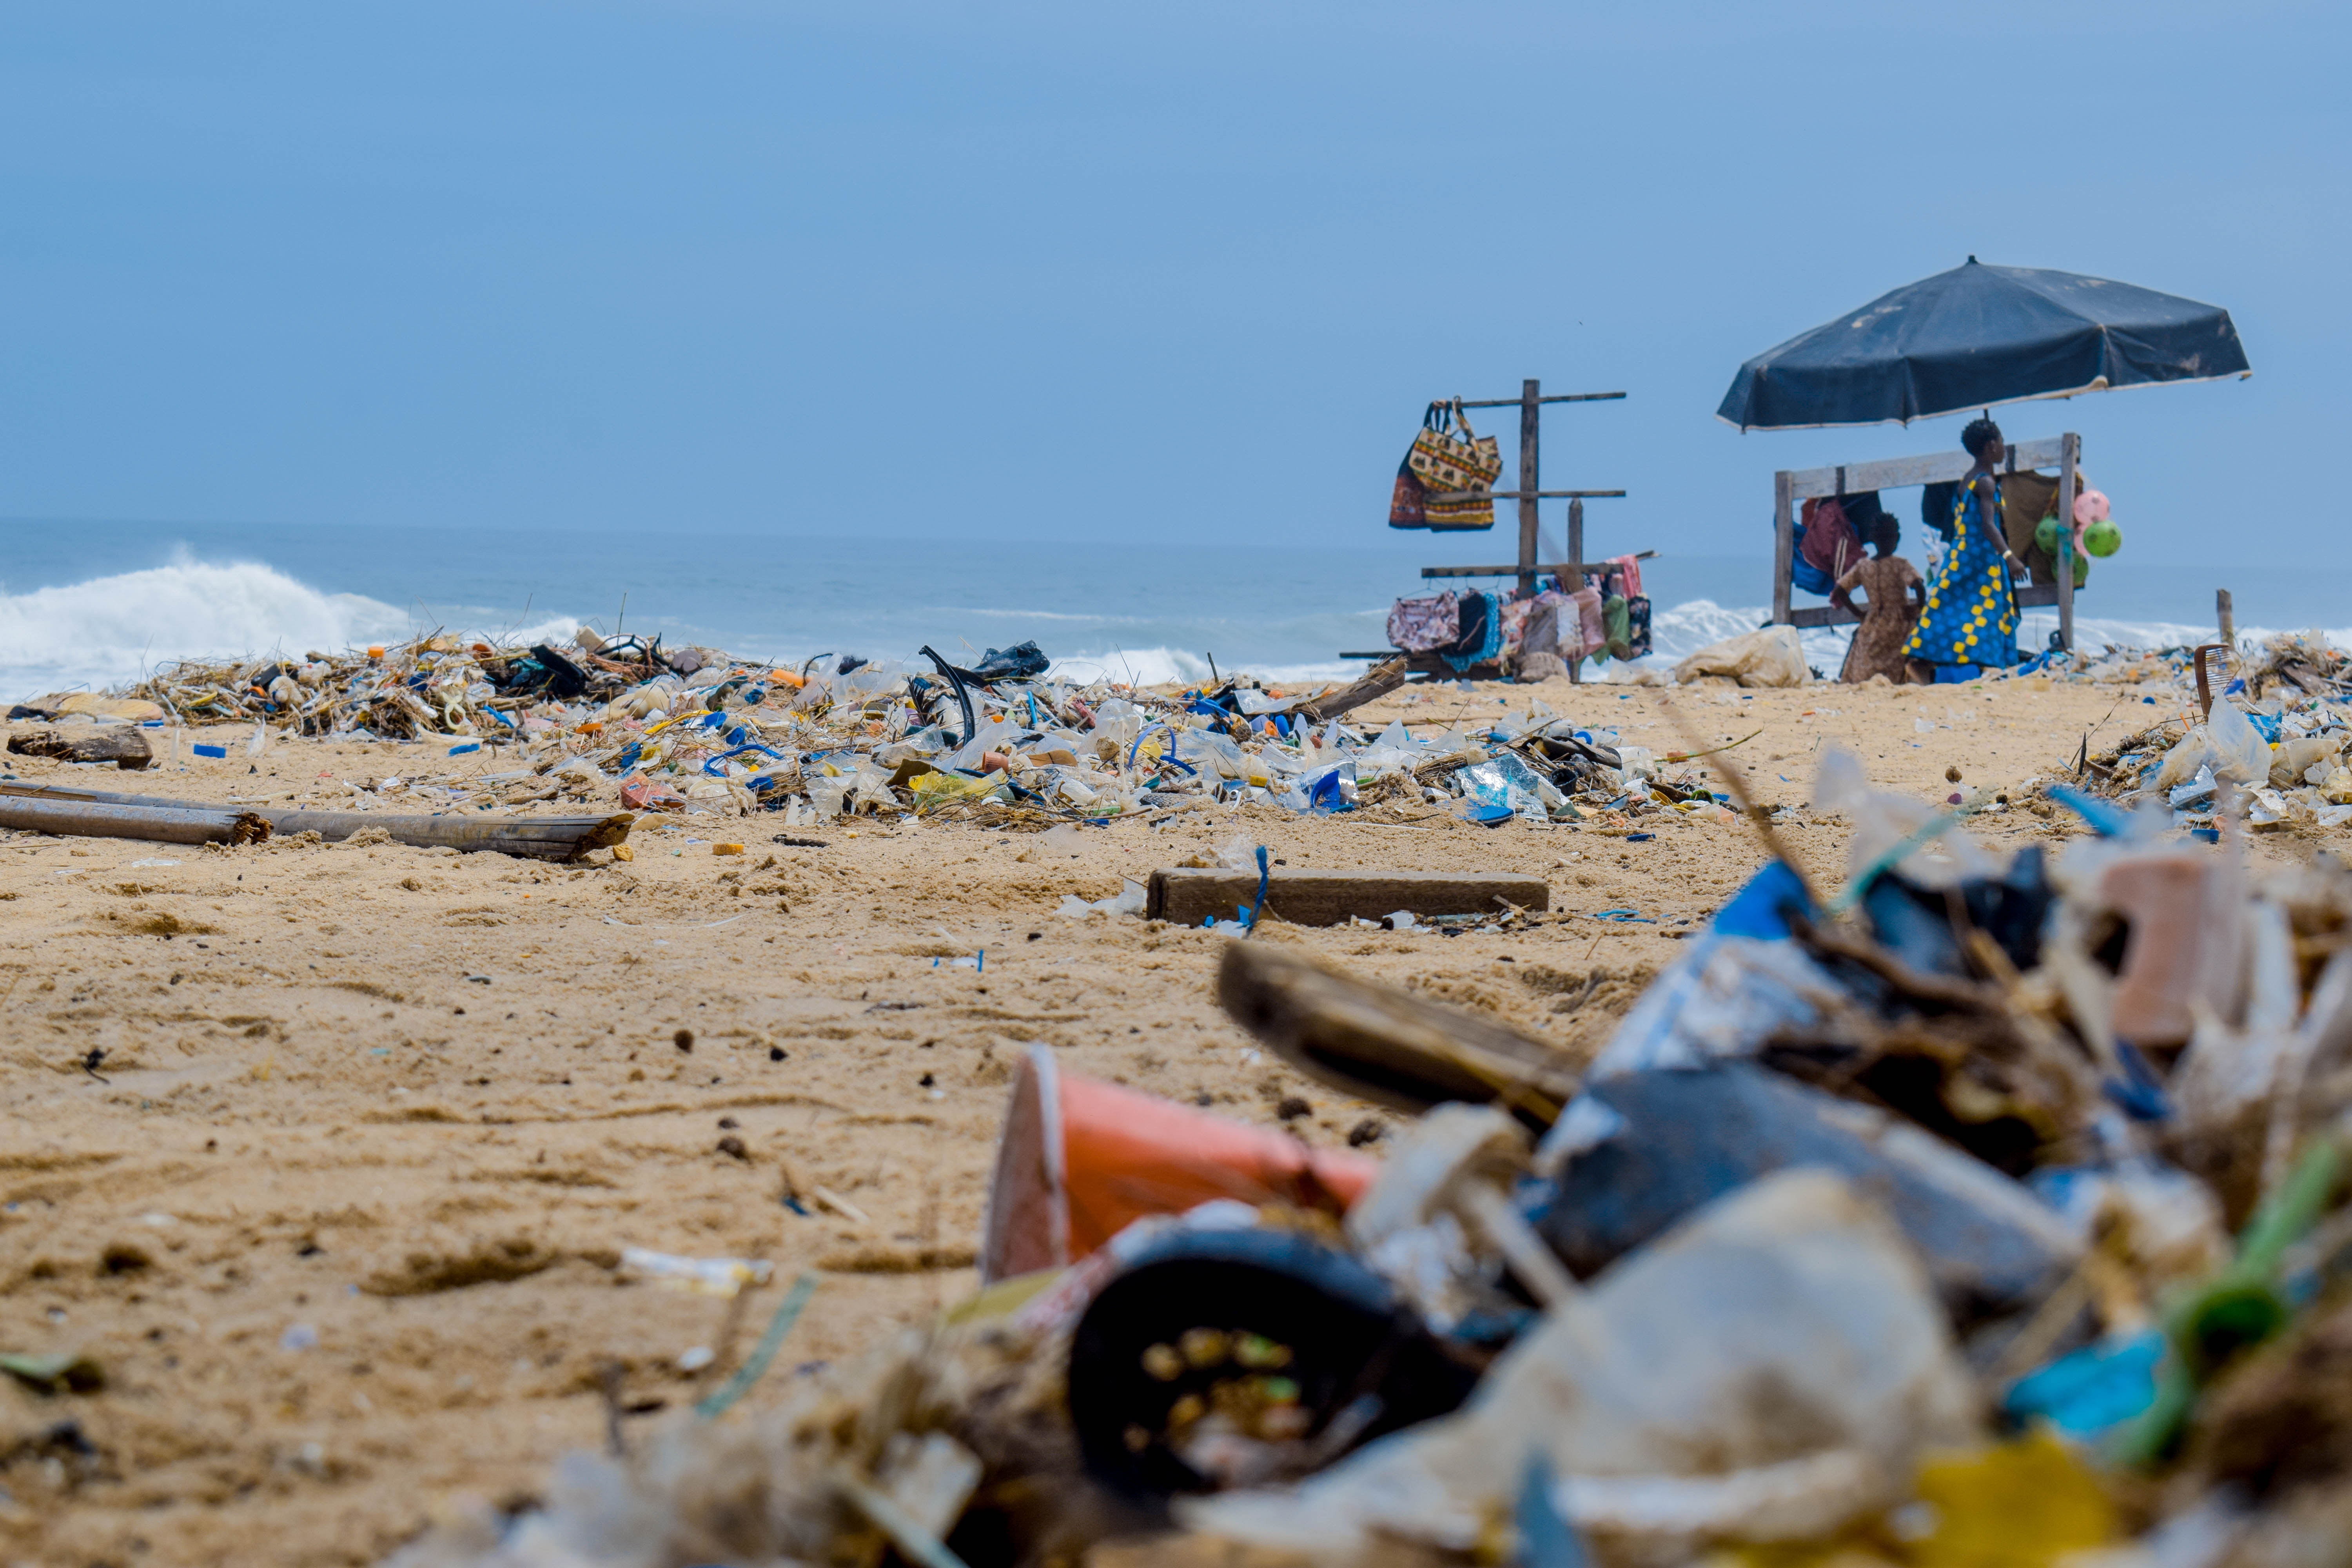 piles-of-garbage-by-the-shore-2827735